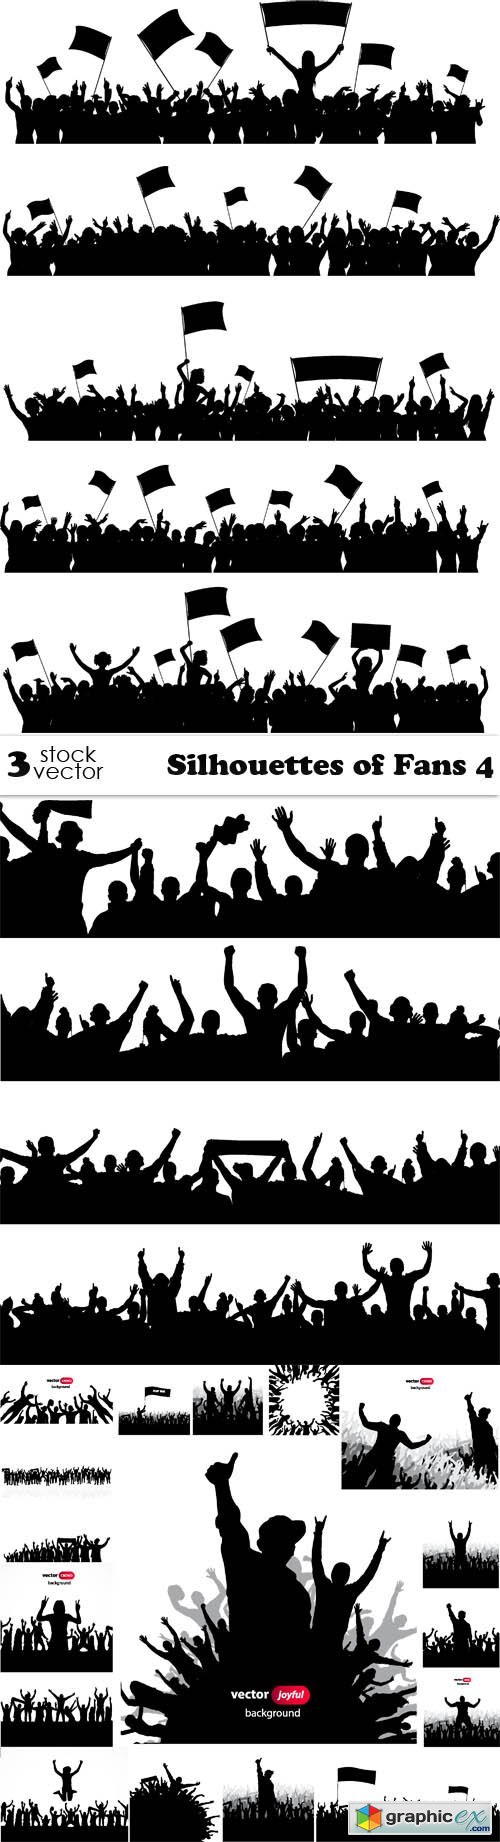 Silhouettes of Fans 4